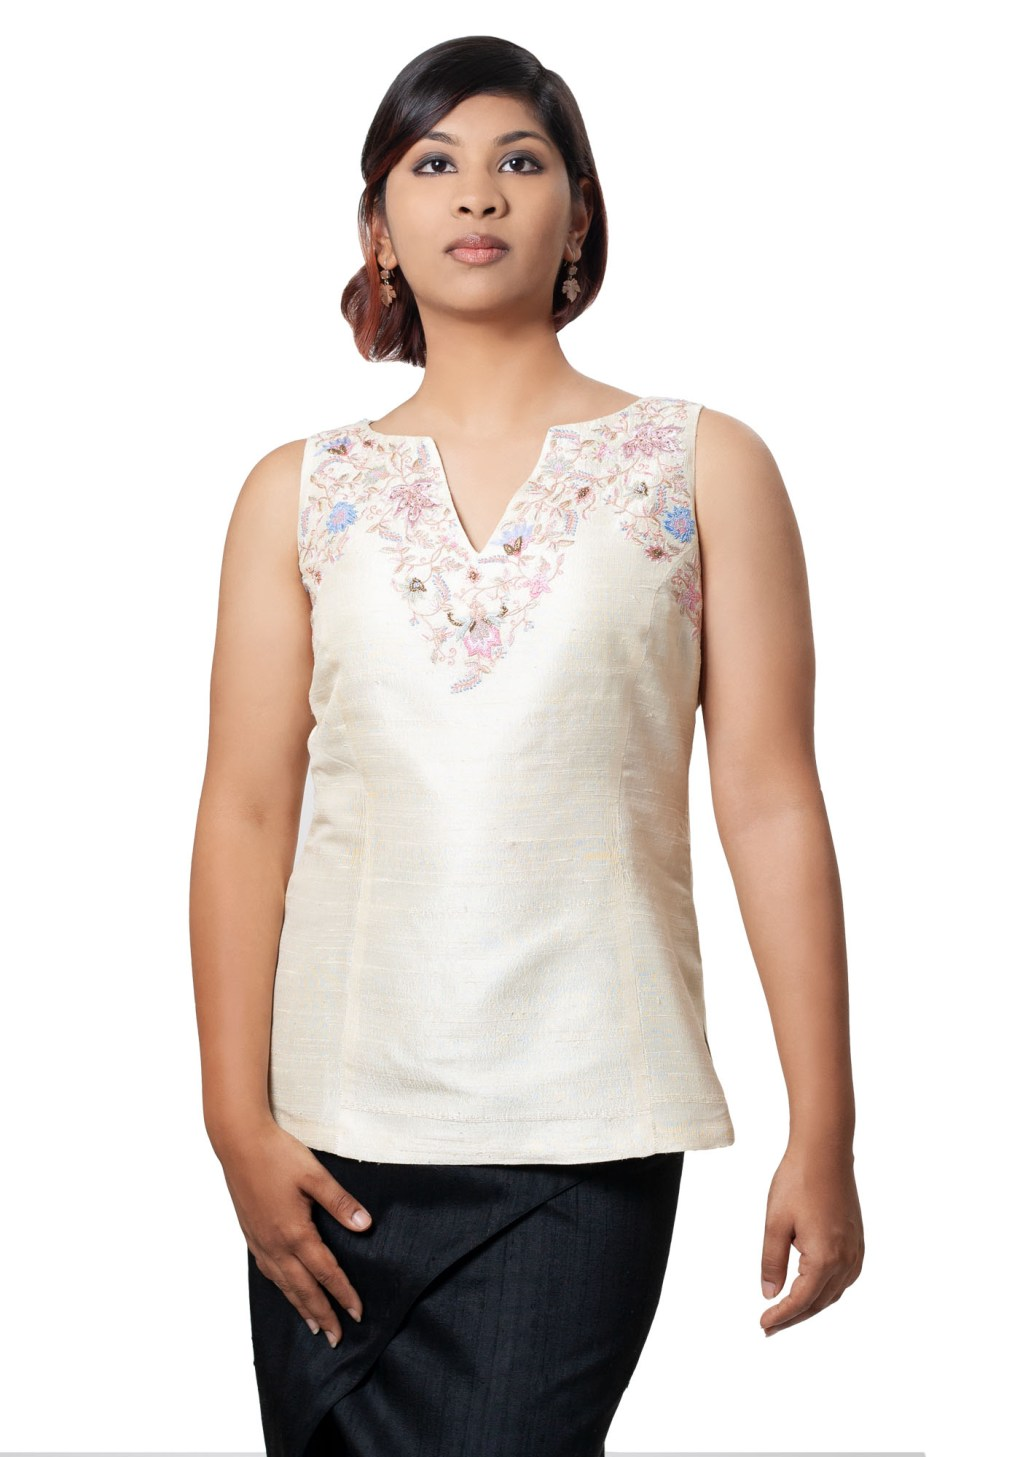 MINC Bridal Couture Sleeveless Hand Embroidered Top in Pale Ivory Silk